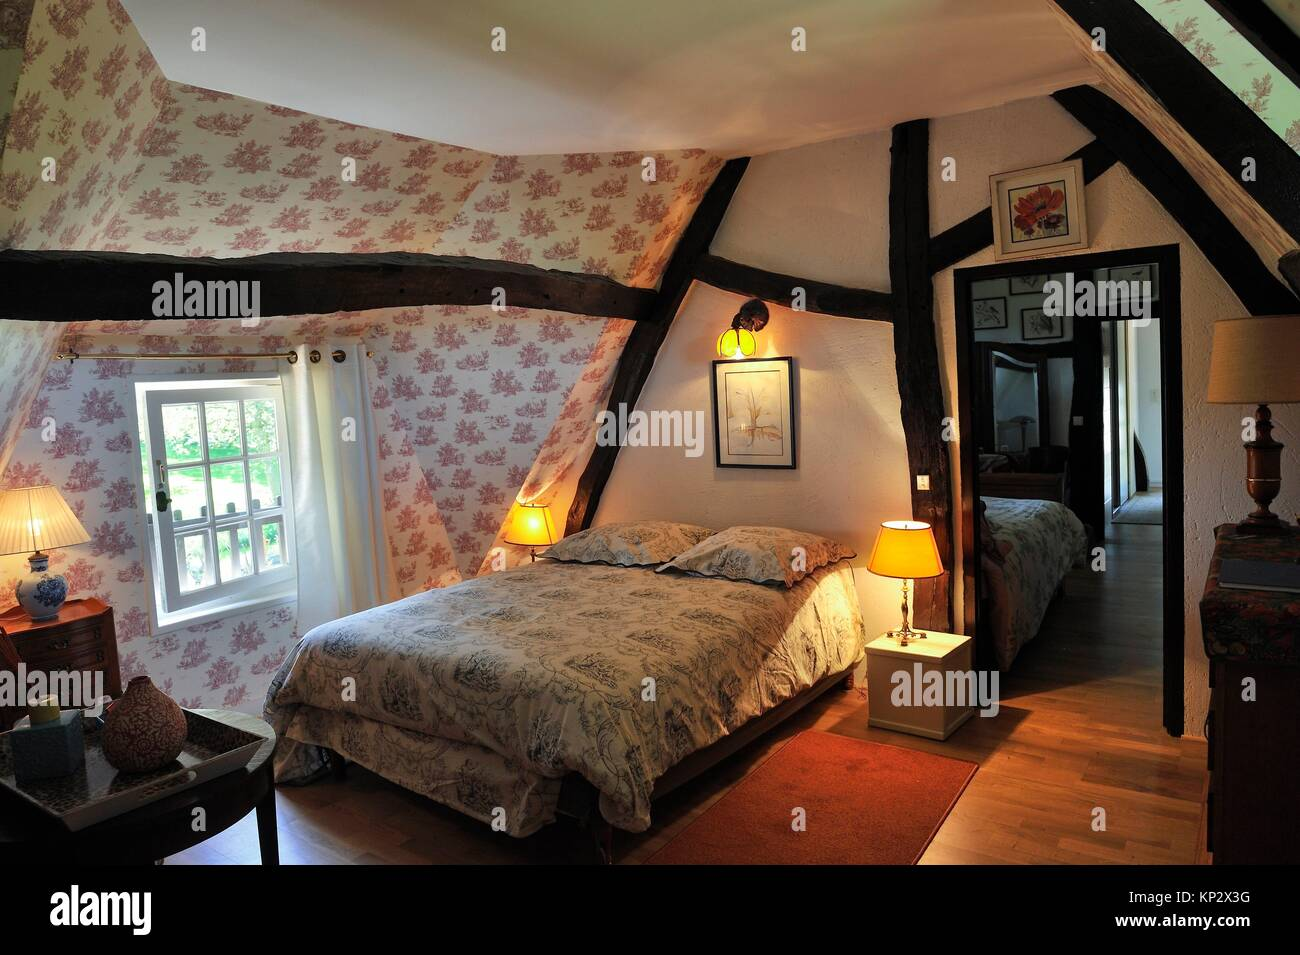 Les Chambre D Annie Mansarde Stock Photos And Mansarde Stock Images Alamy